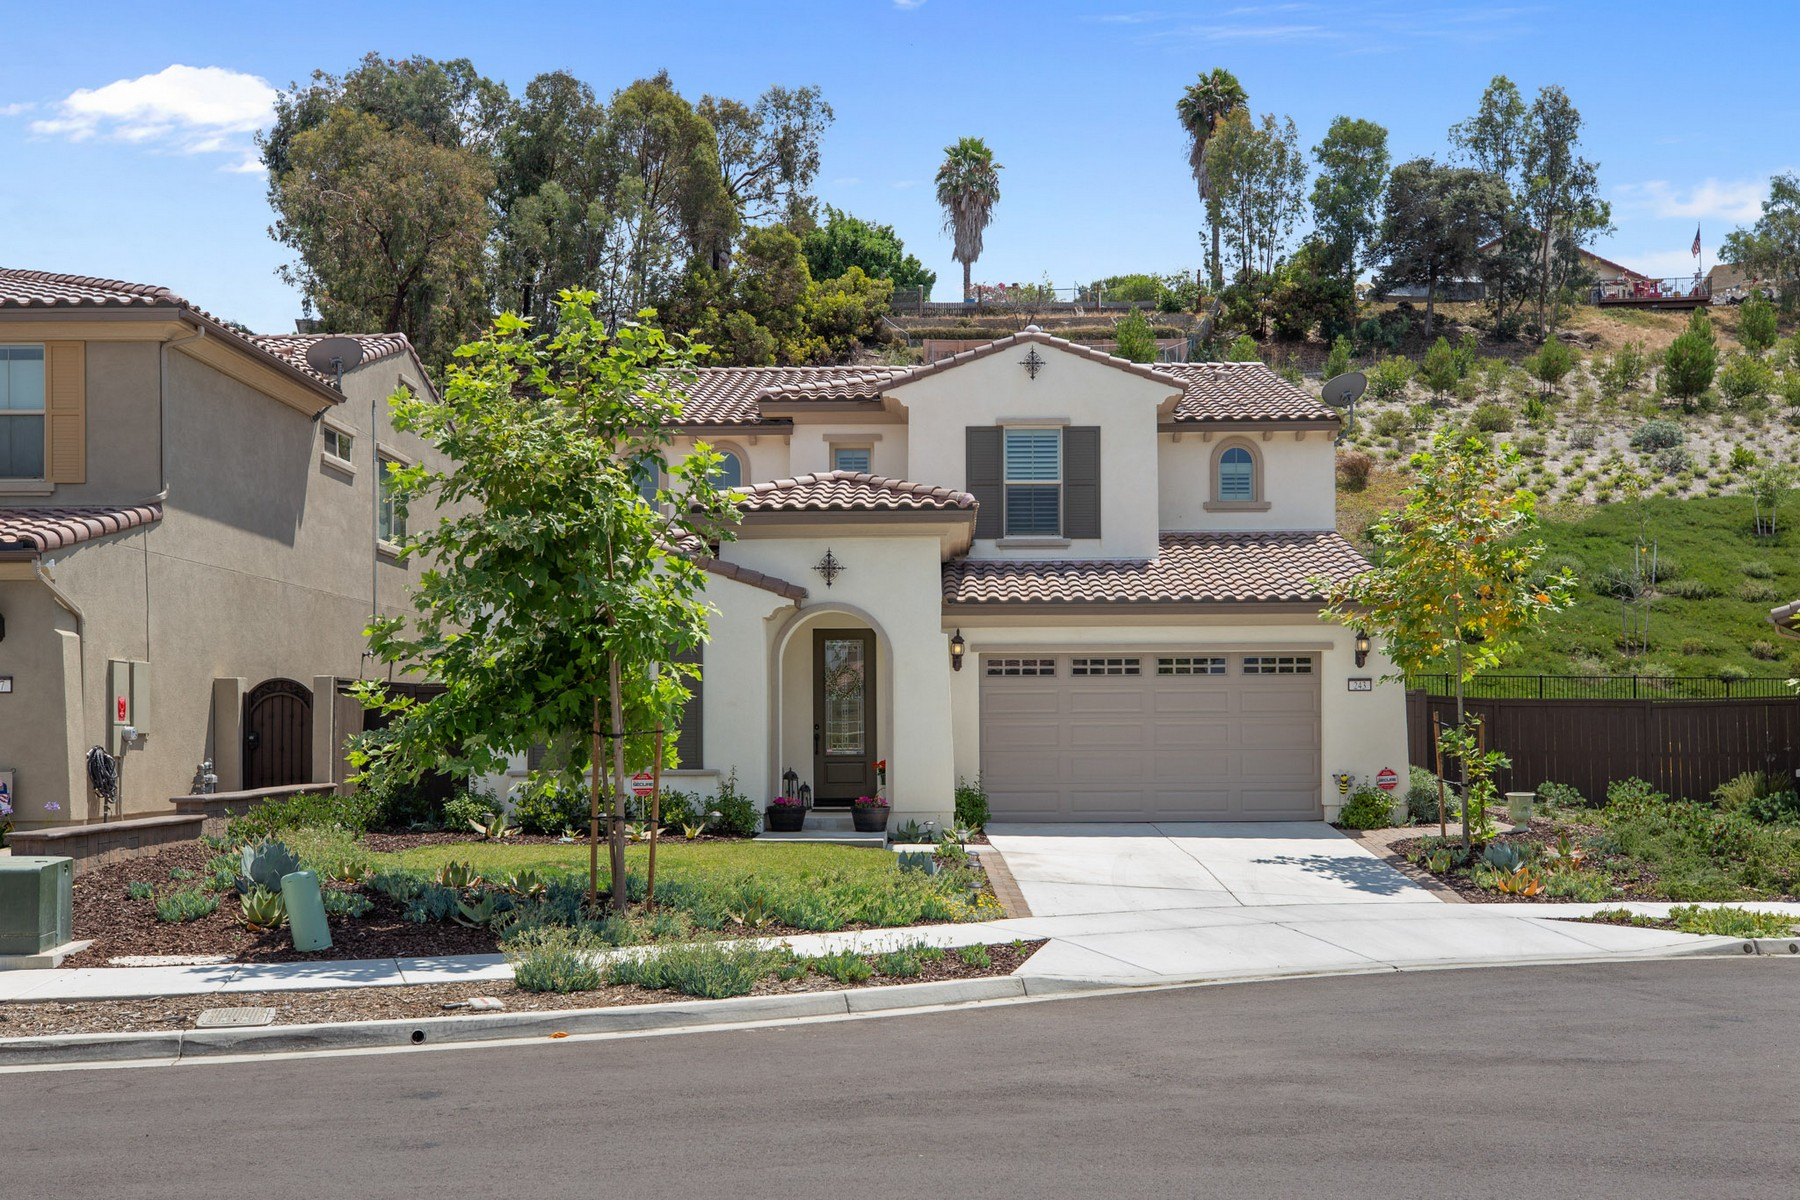 Single Family Home for Active at 243 Flores Lane 243 Flores Lane Vista, California 92083 United States